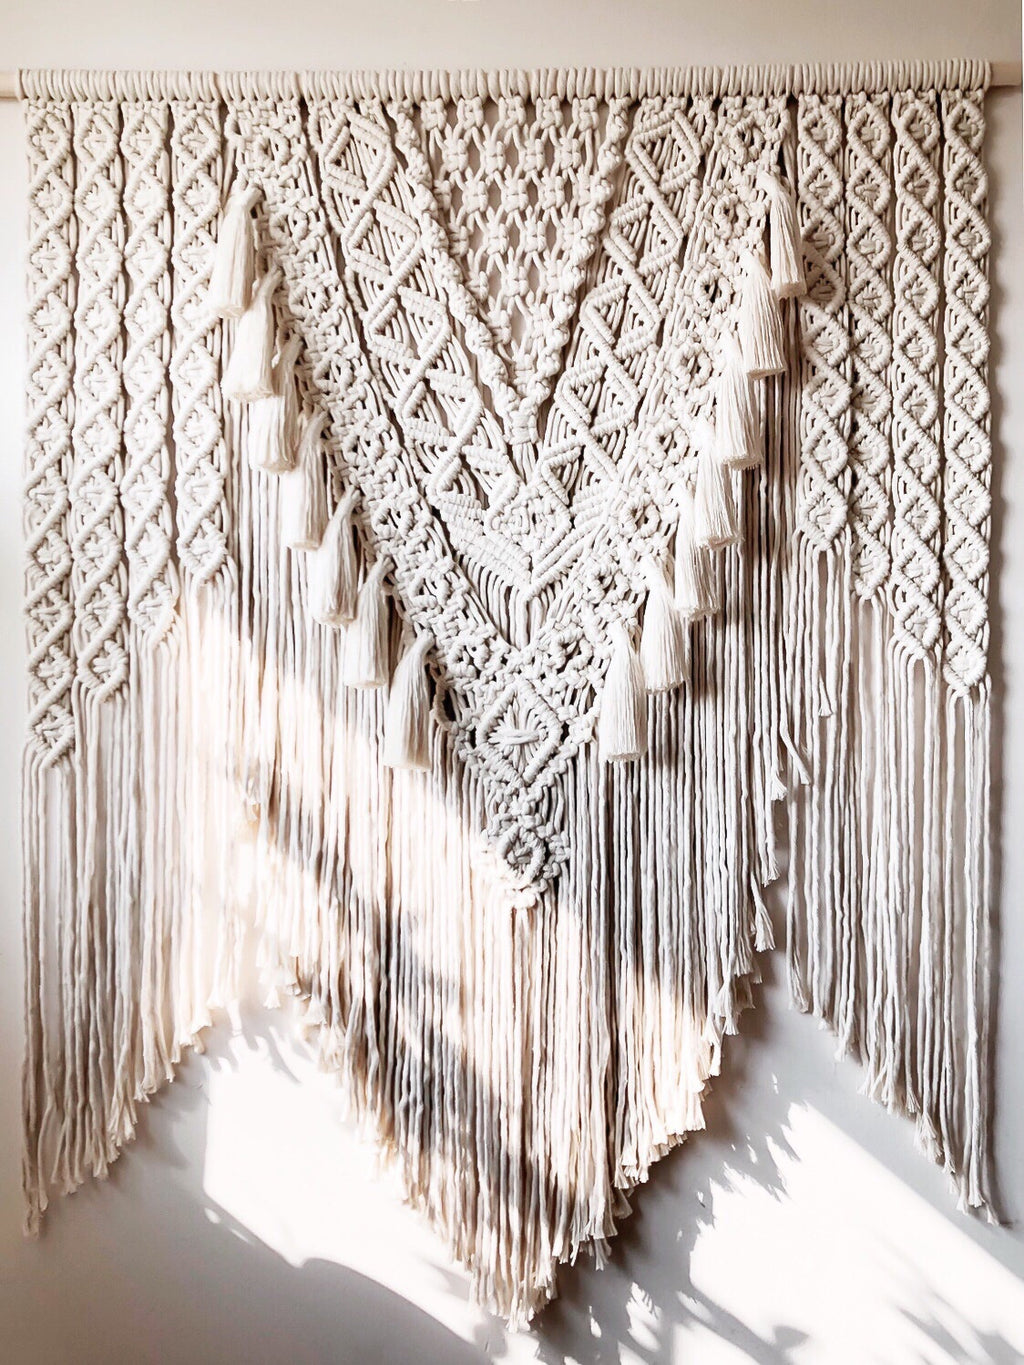 Layered Macrame with Tassels